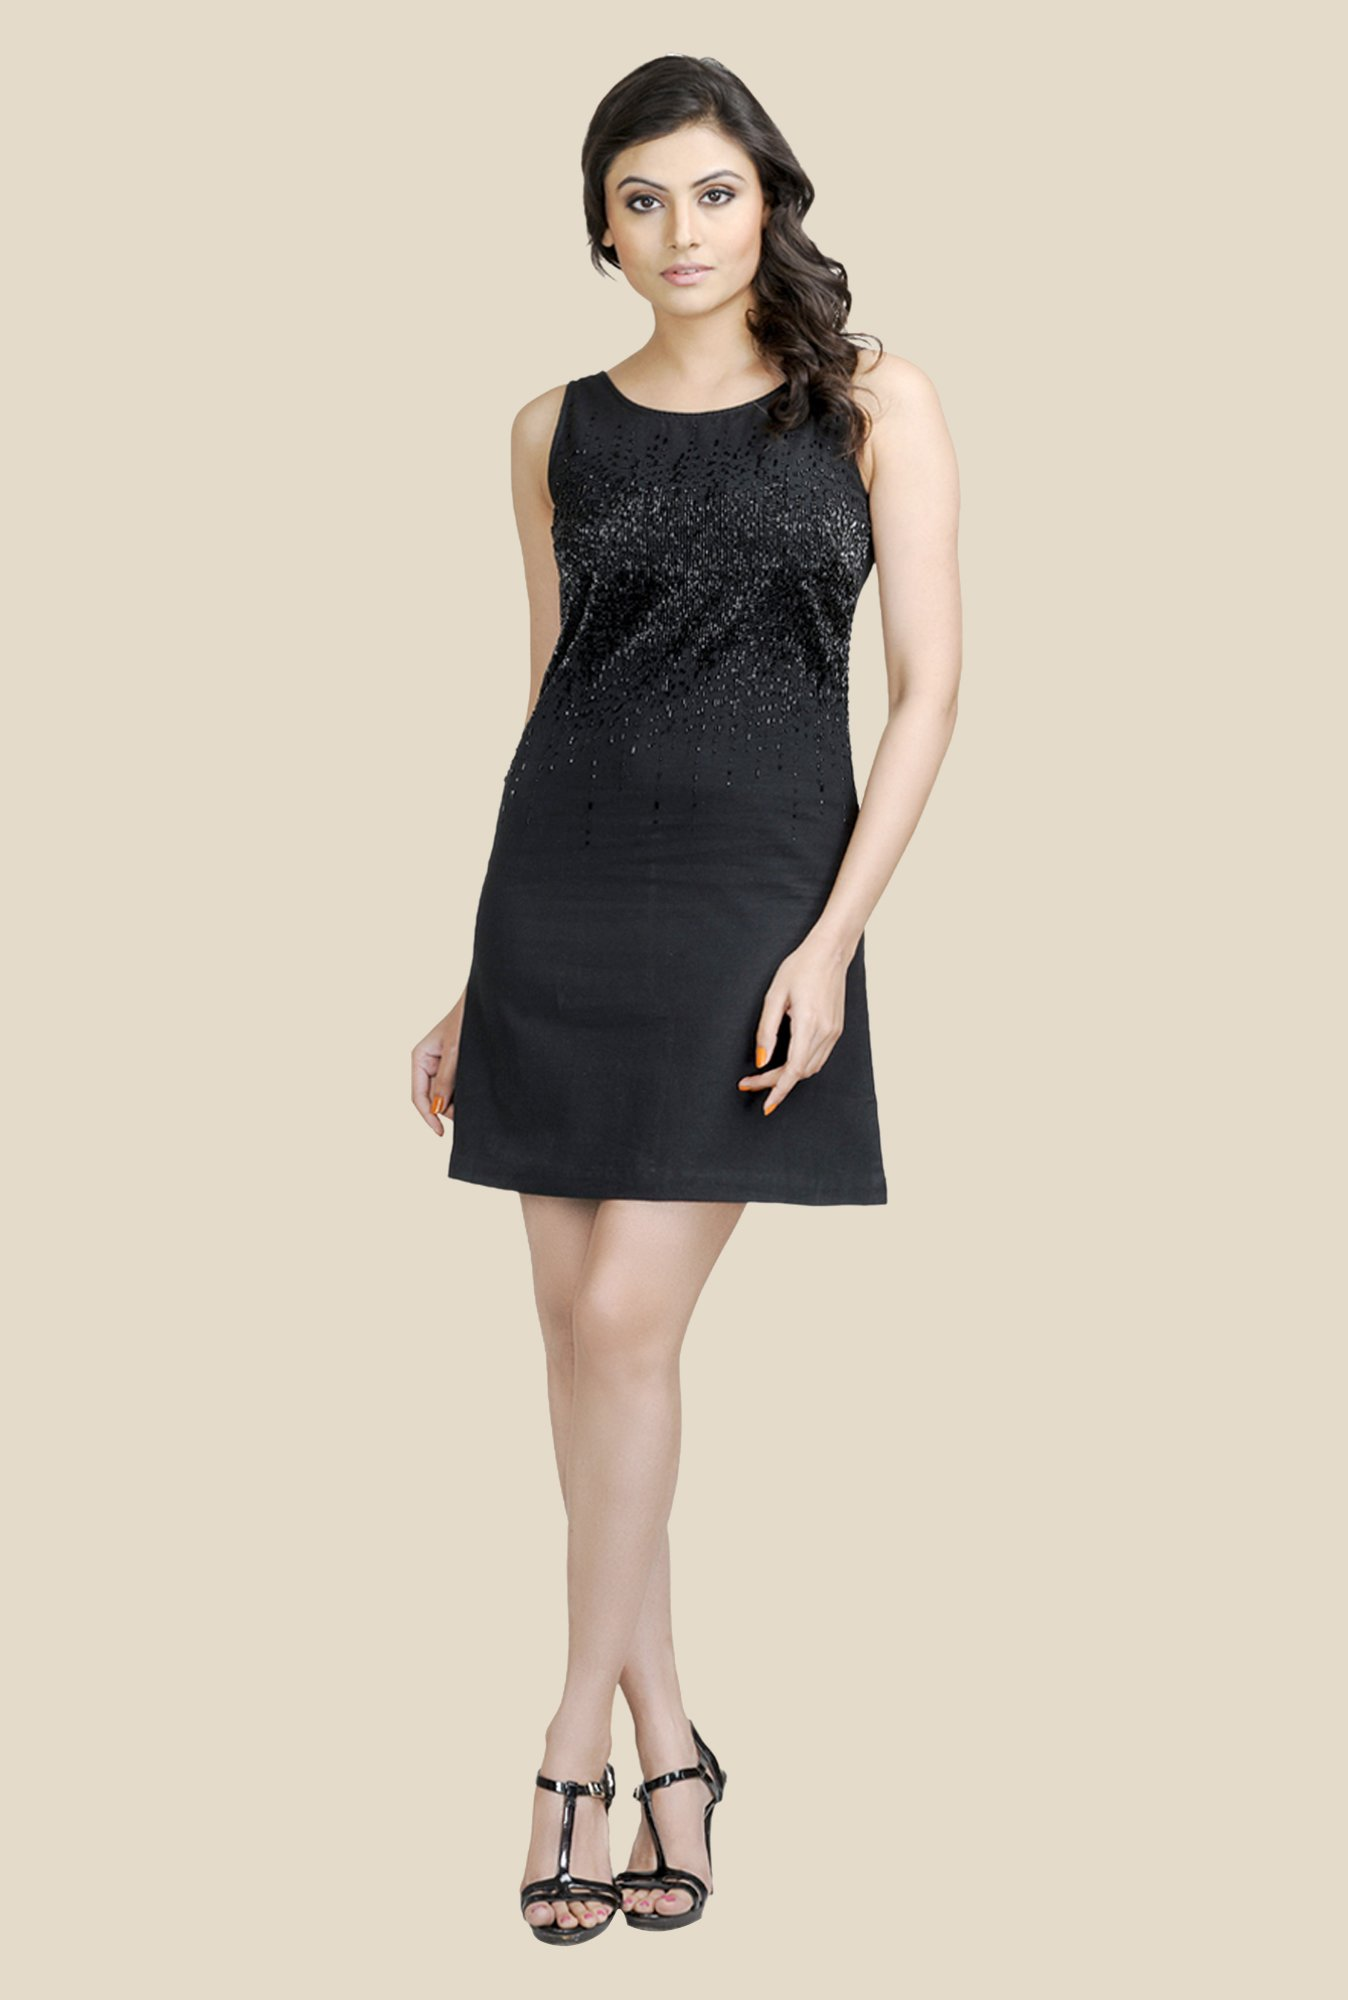 Fabindia Black Embellished Dress